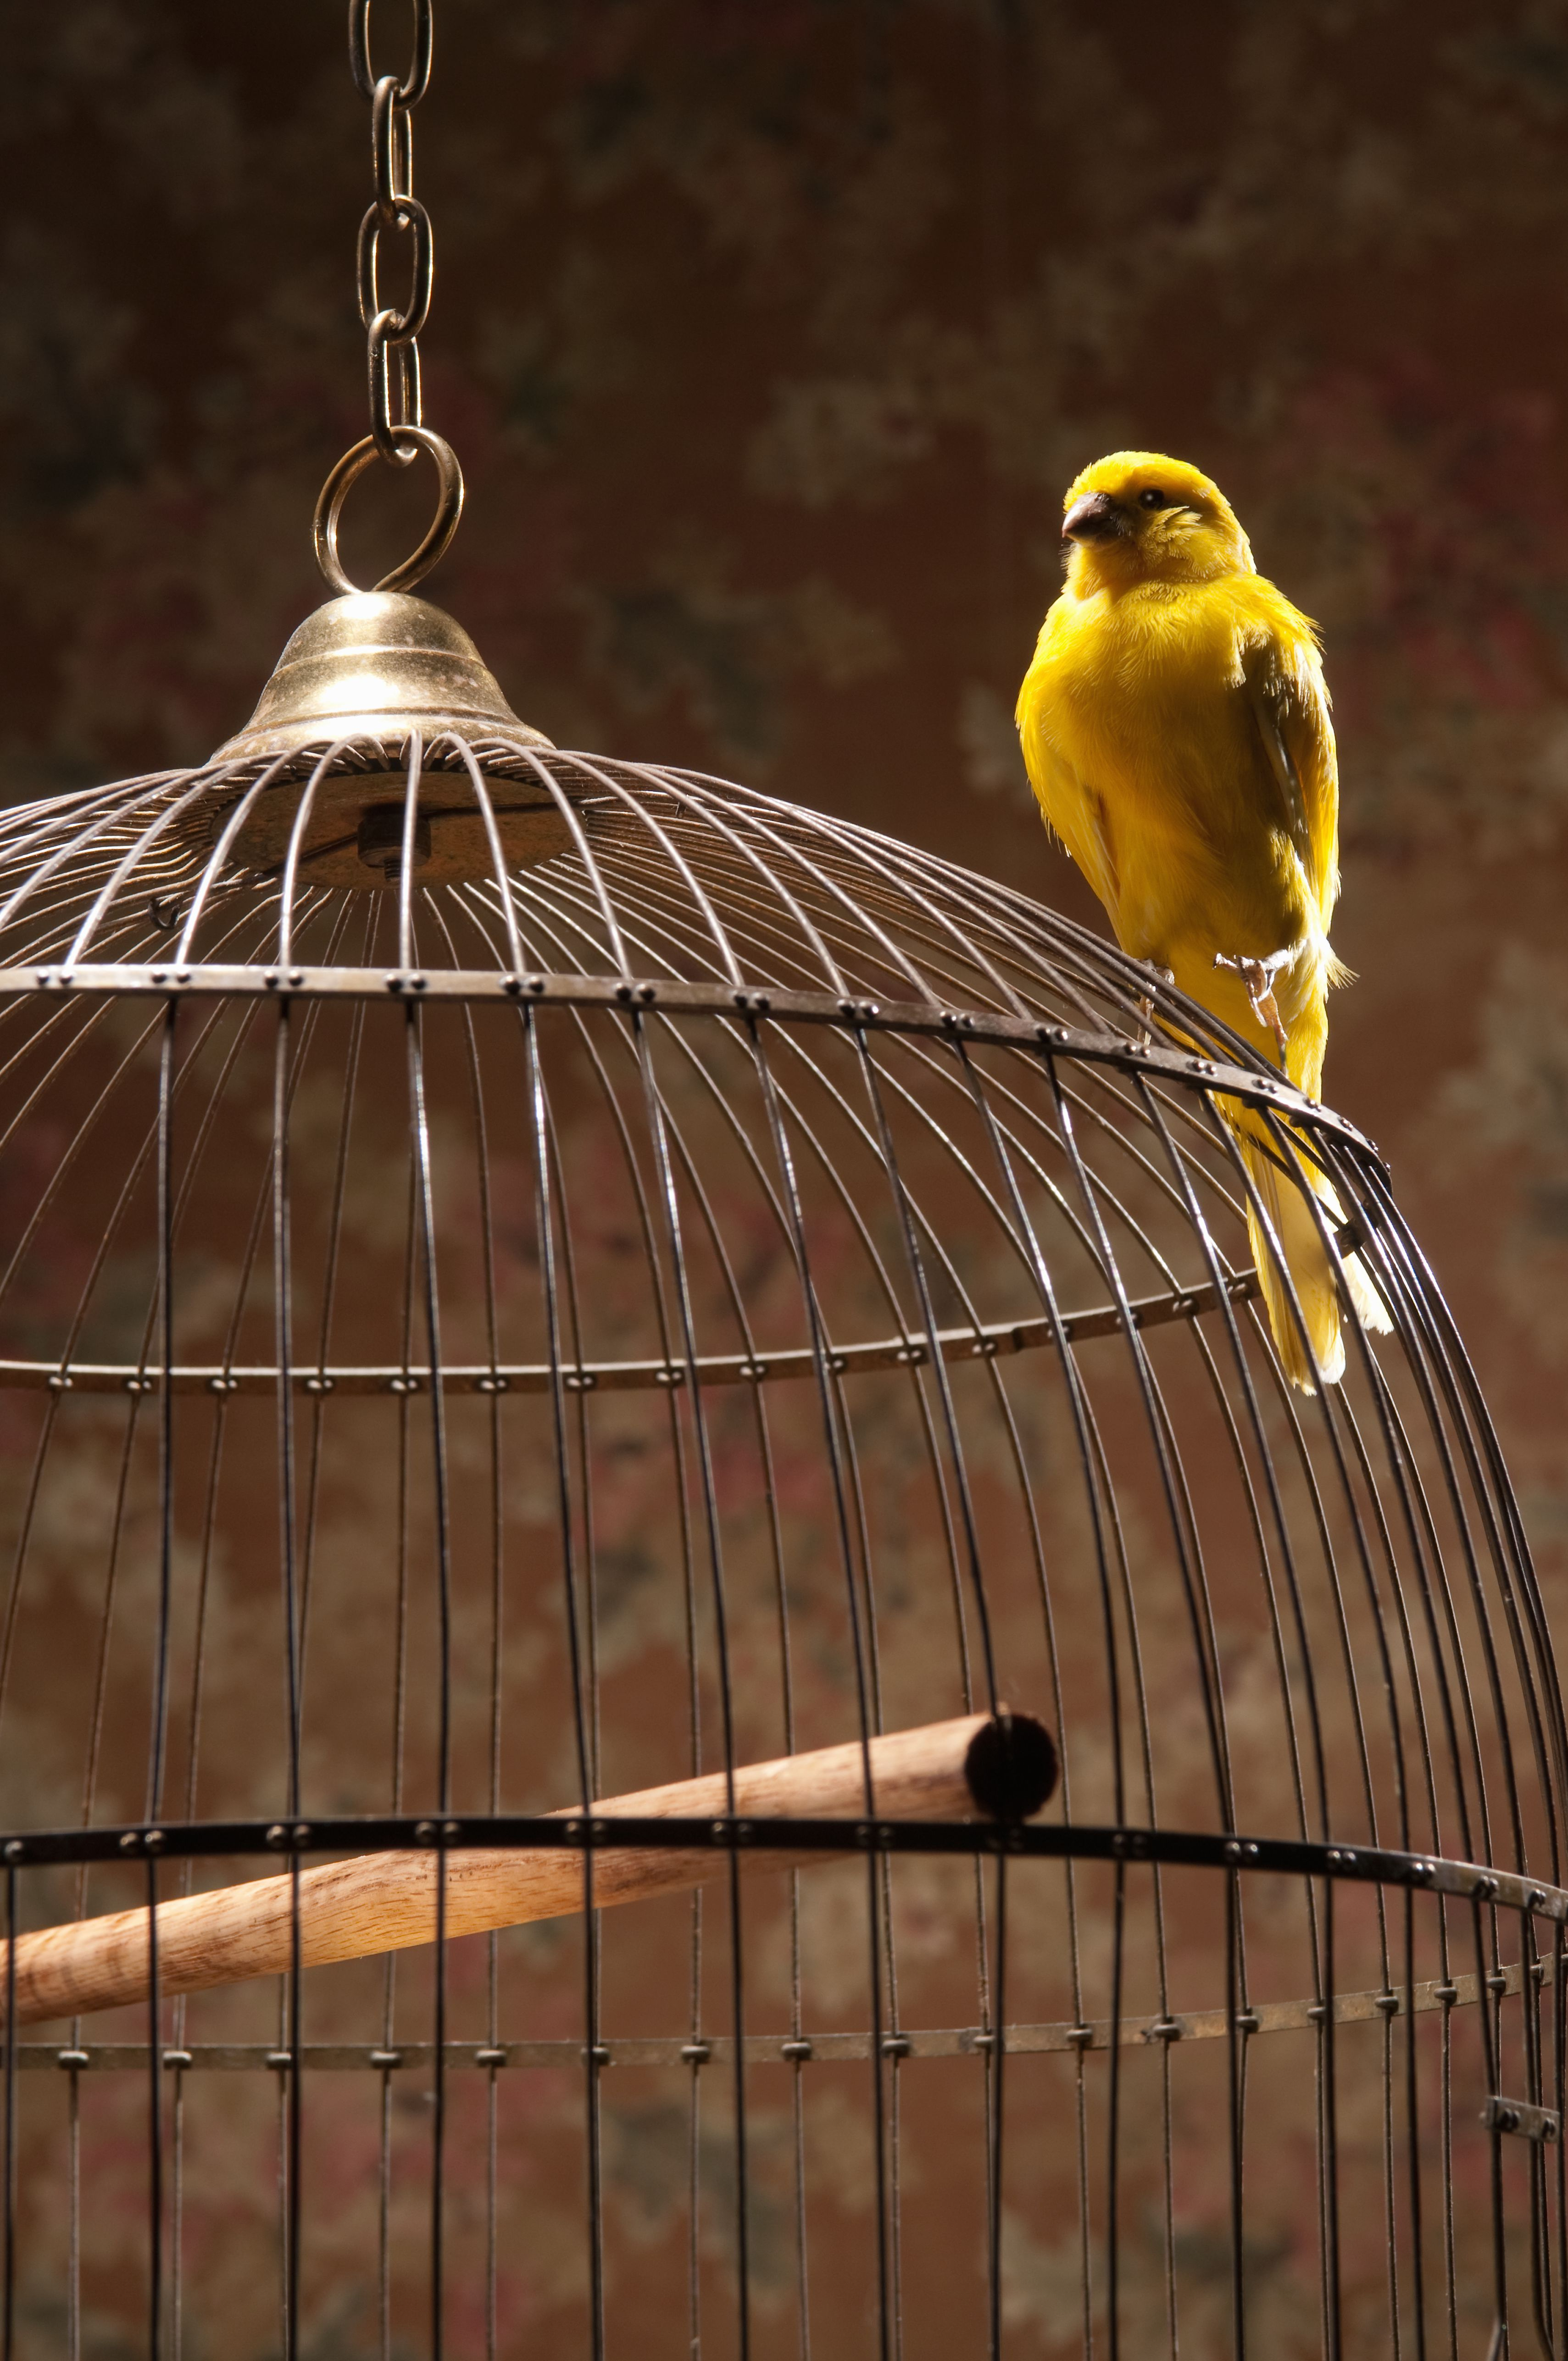 Know the Risks Before You DIY a Bird Cage